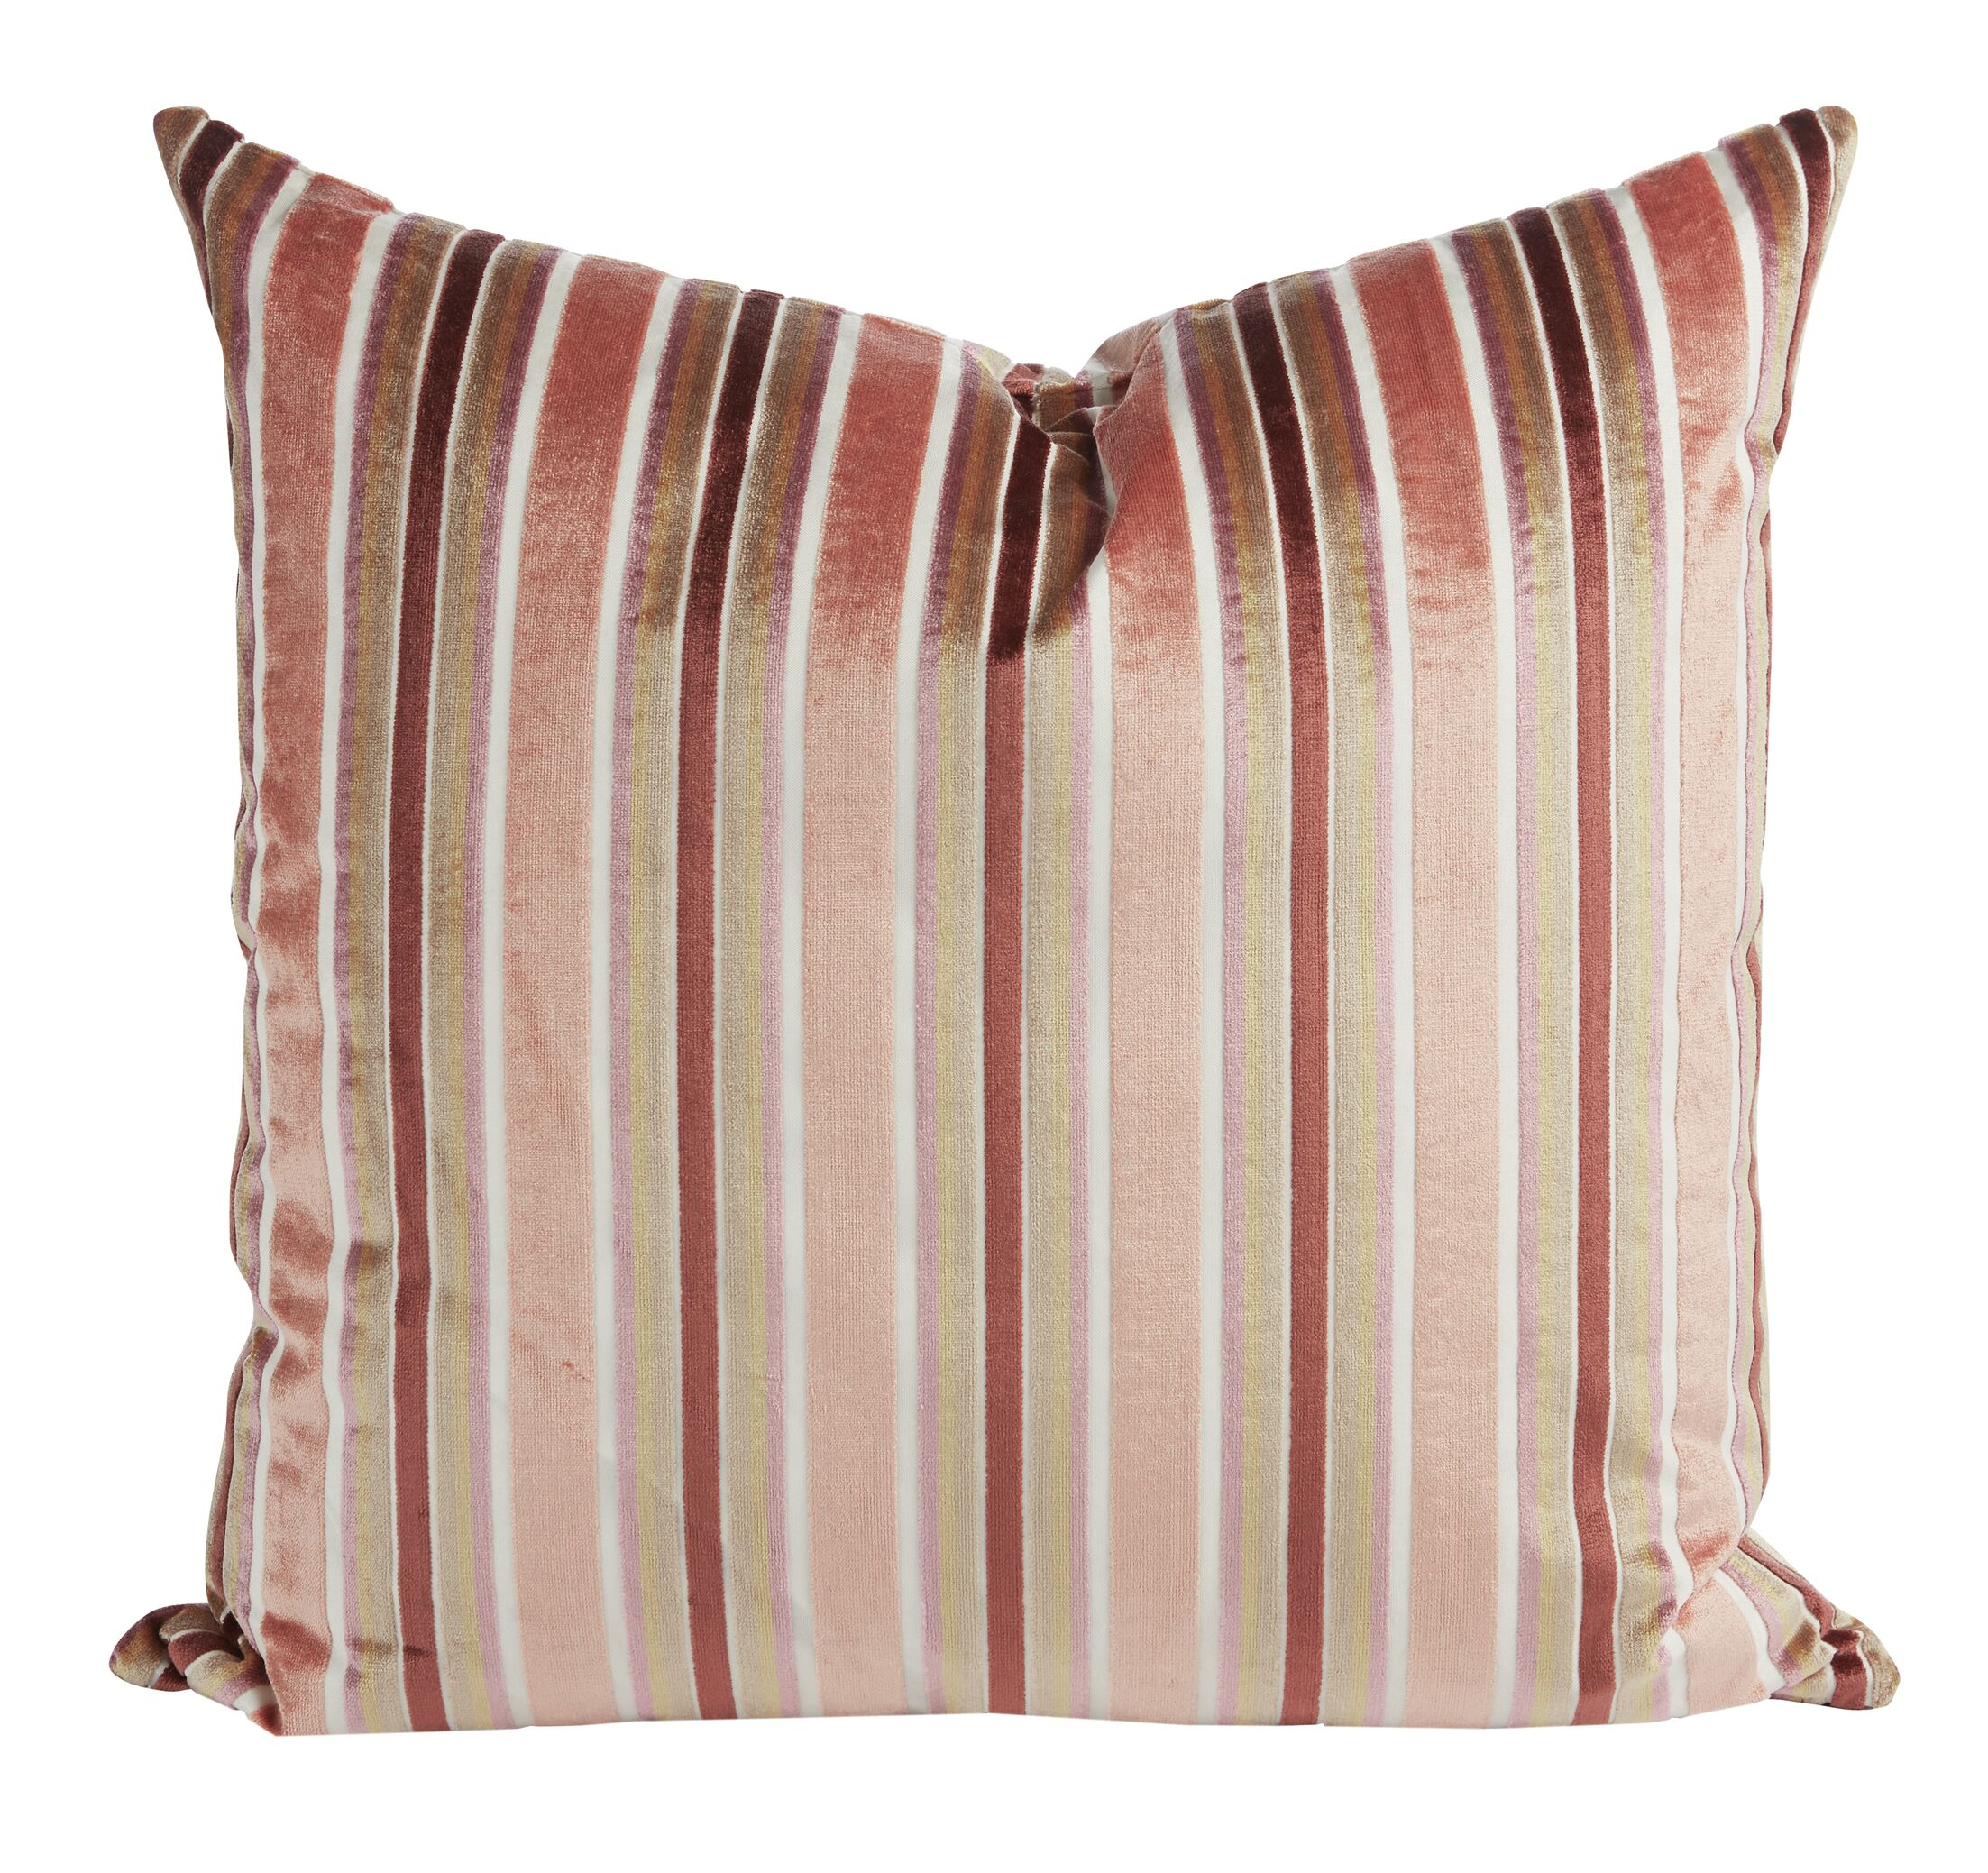 Rose Velvet Throw Pillow (Set of 2)